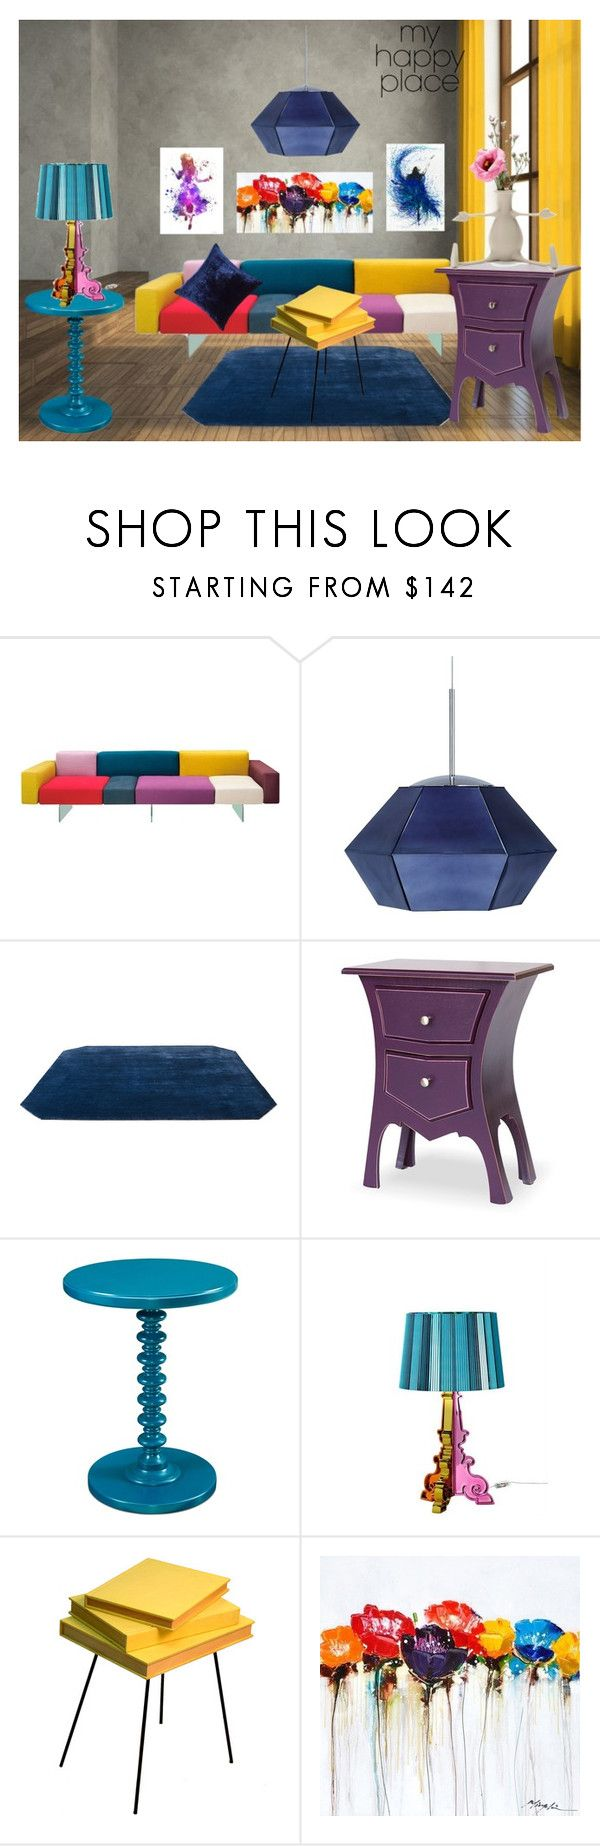 """""""Really happy place"""" by subvilli on Polyvore featuring interior, interiors, interior design, home, home decor, interior decorating, Tom Dixon, &Tradition, Kartell and Valsecchi 1918"""